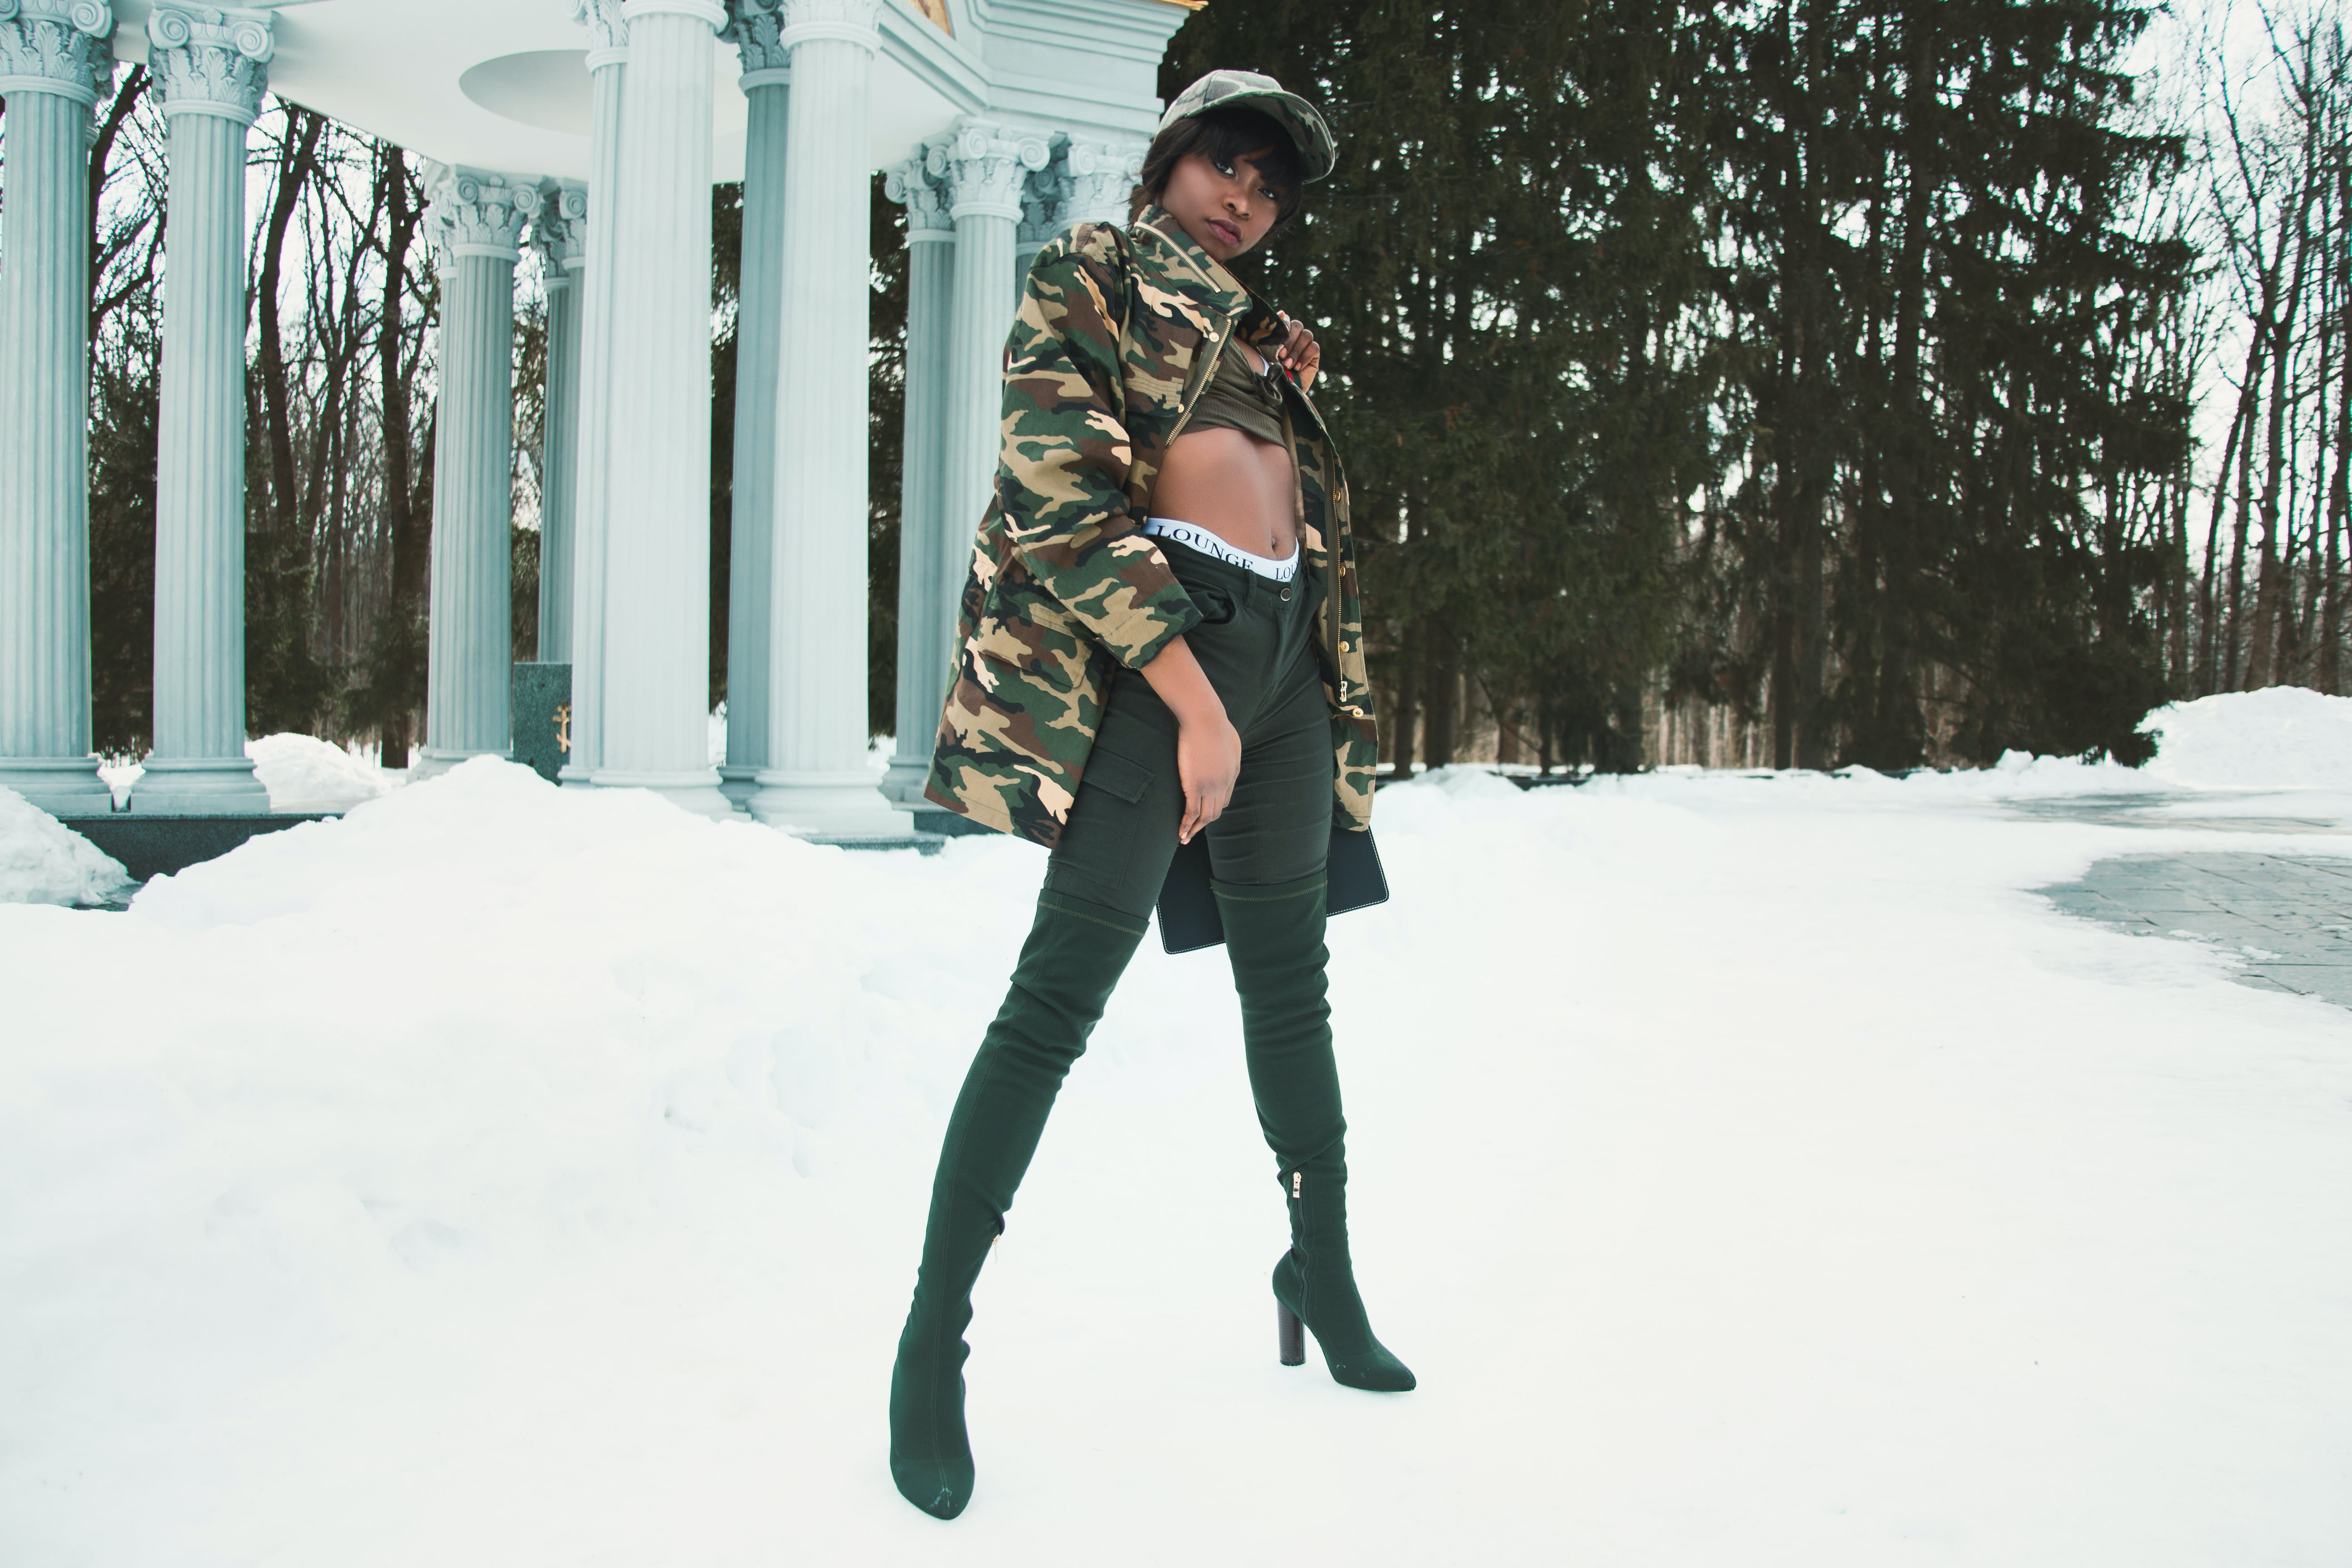 Woman Wearing Camouflage Jacket Standing on Snow